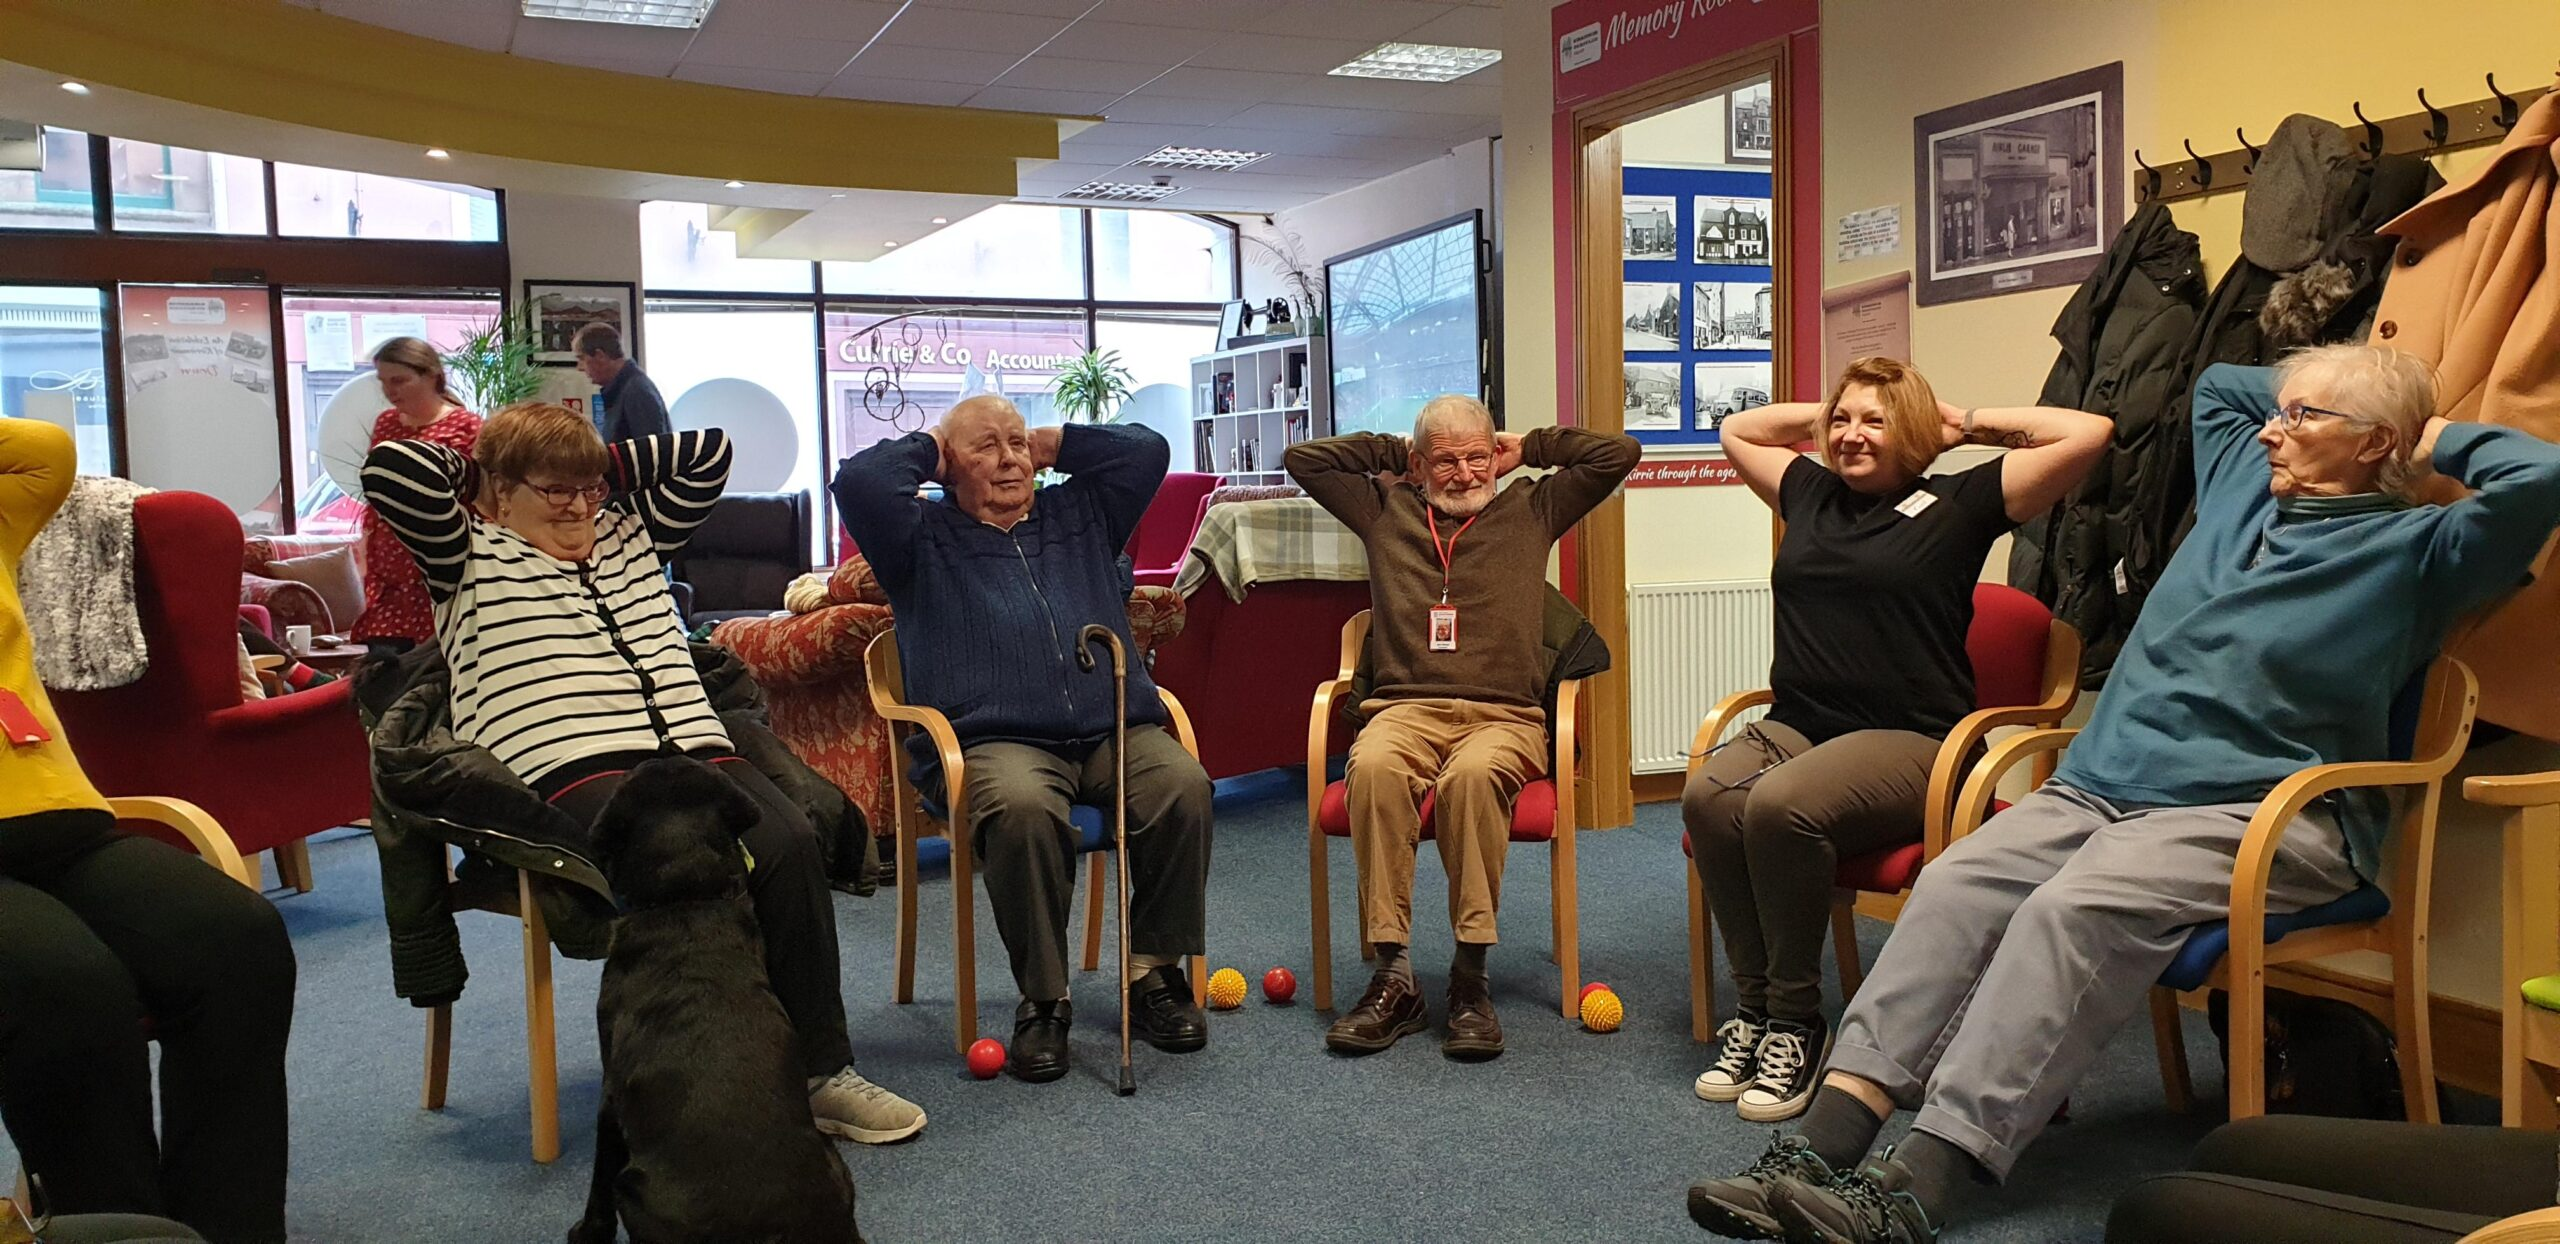 A group of adults take part in a seated excerise group